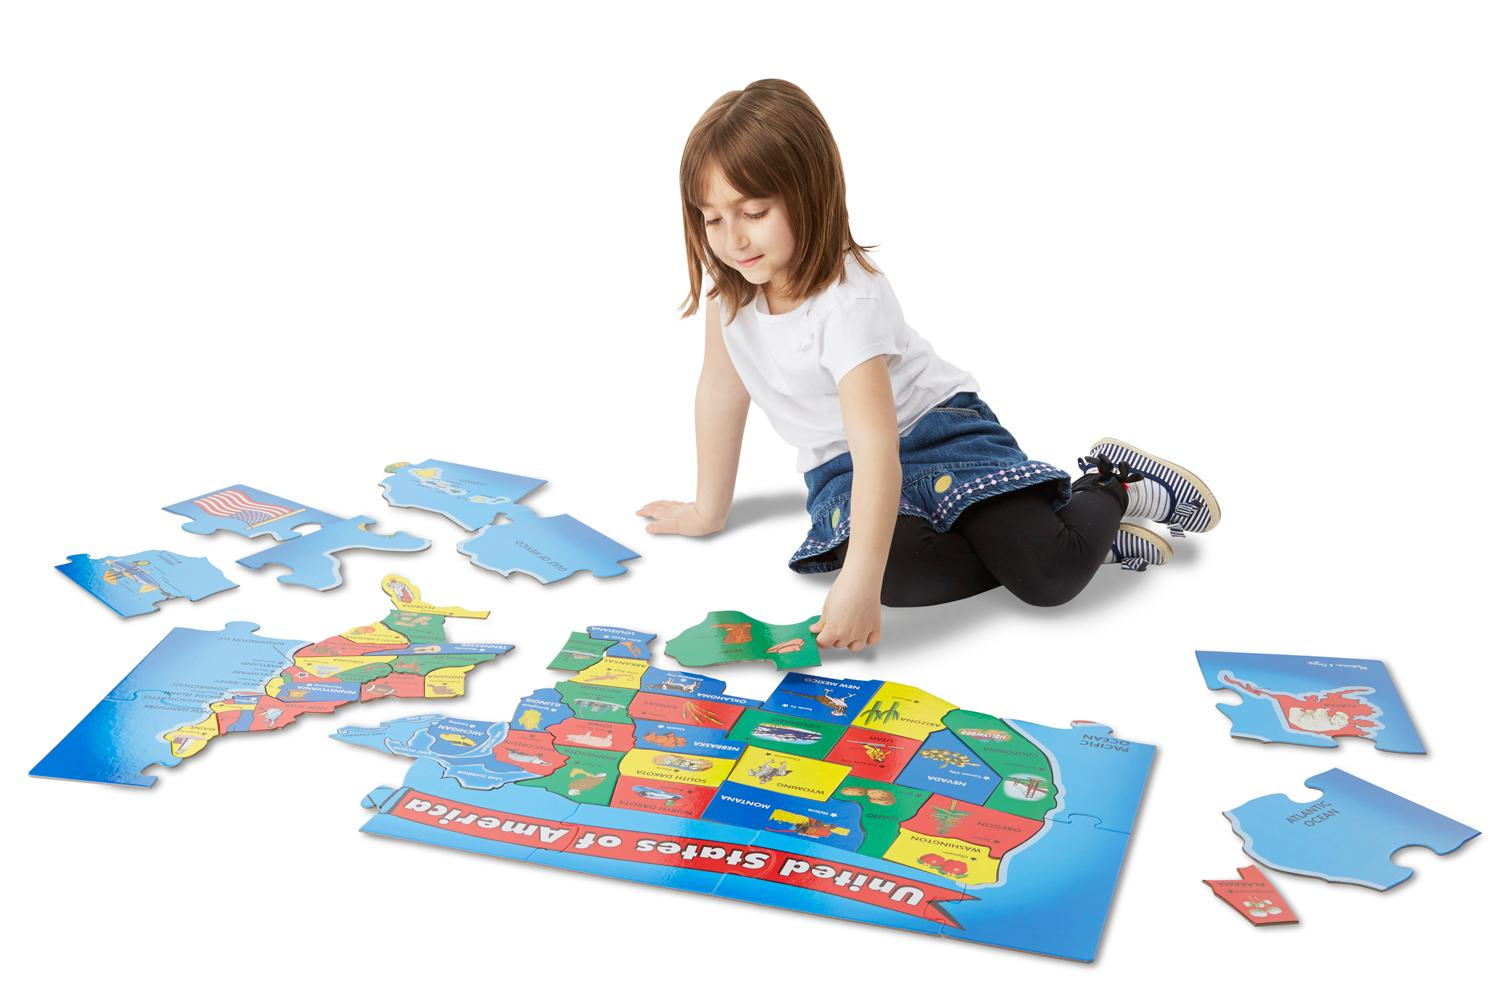 united states map puzzle for kids with B000gkau1i on Stock Illustration Rooster Animal Cartoon Illustration Children Colorful Vector Image60975657 also Stock Illustration Put All Together Puzzle Pieces Solve Mystery Problem Solving Seeing Full Total Picture Image56609285 also Printable Word Search Puzzles likewise B000GKAU1I additionally 2.